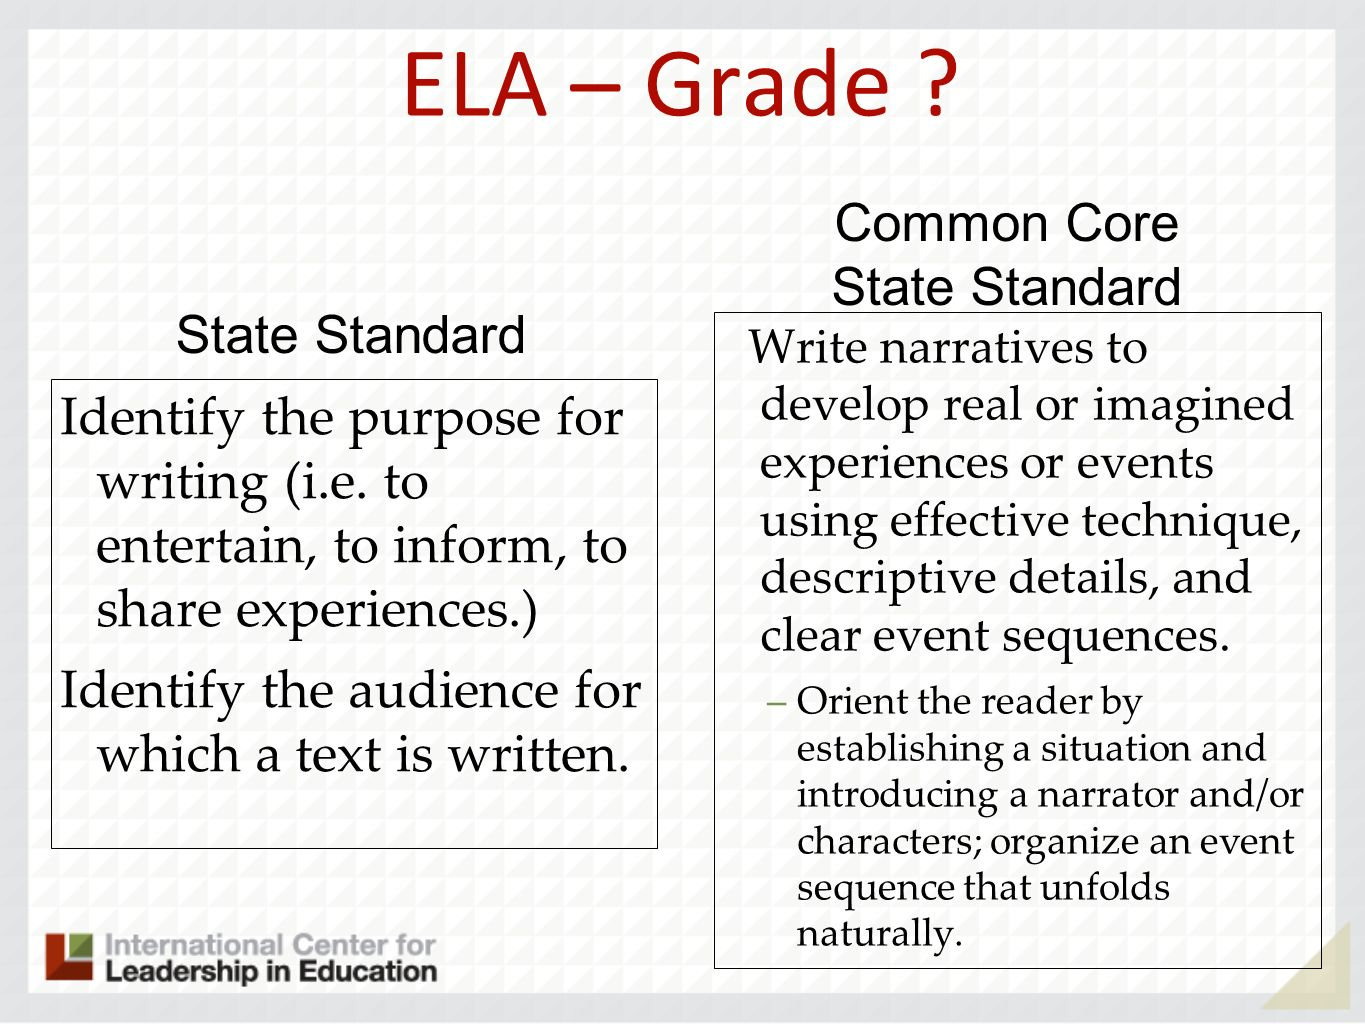 ELA – Grade ? Identify the purpose for writing (i.e. to entertain, to inform, to share experiences.) Identify the audience for which a text is written